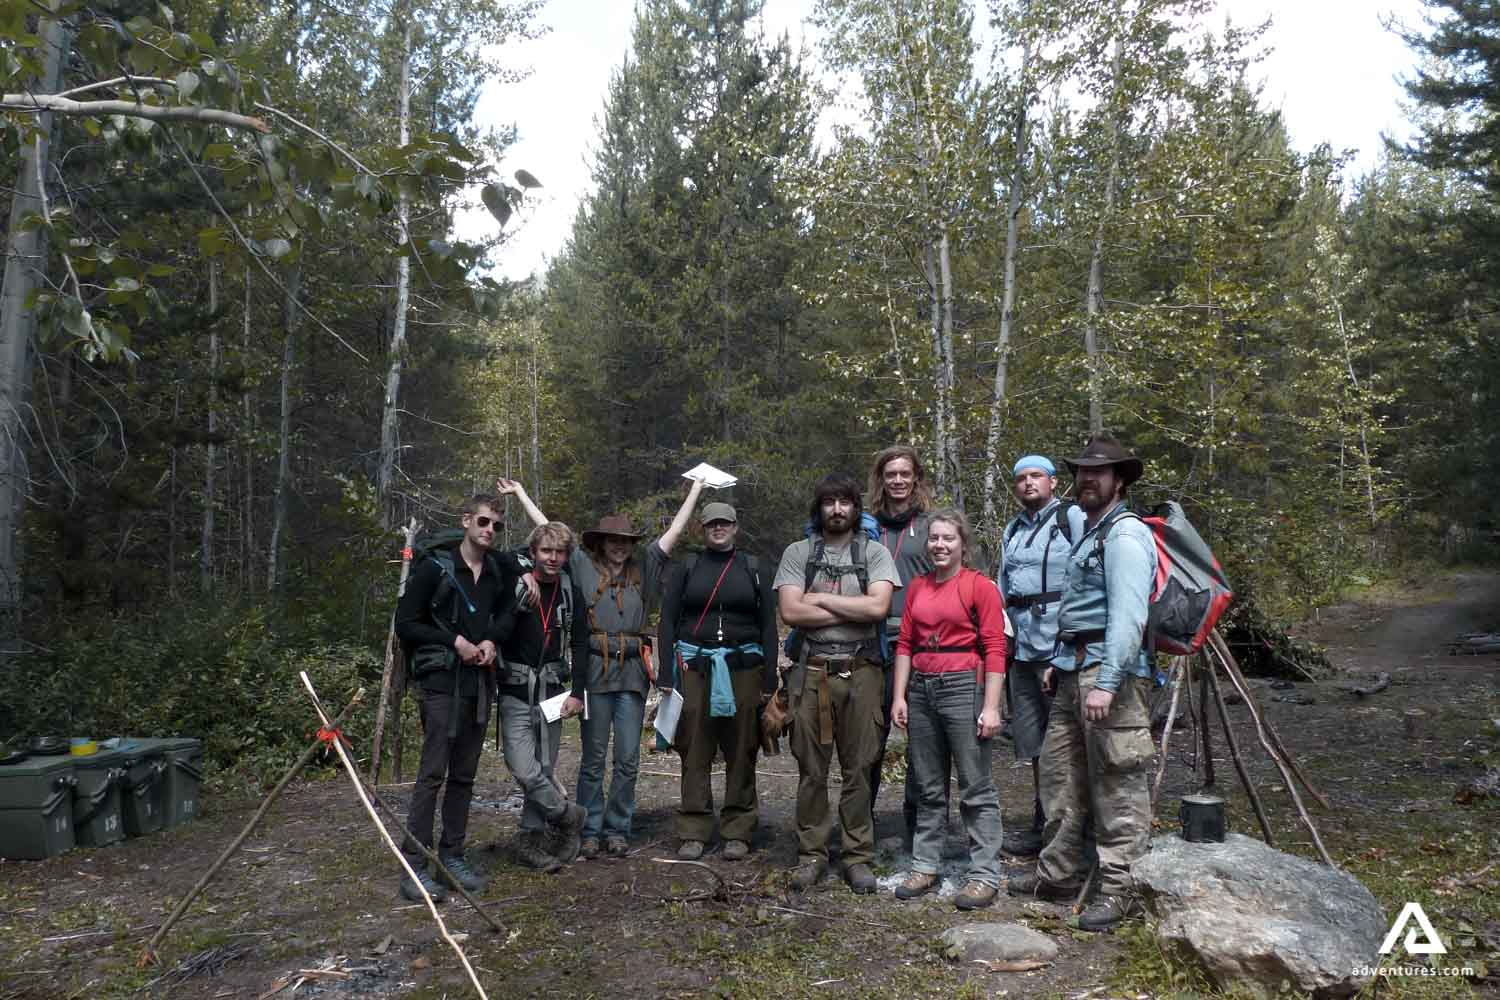 A group of tourists on wilderness survival training